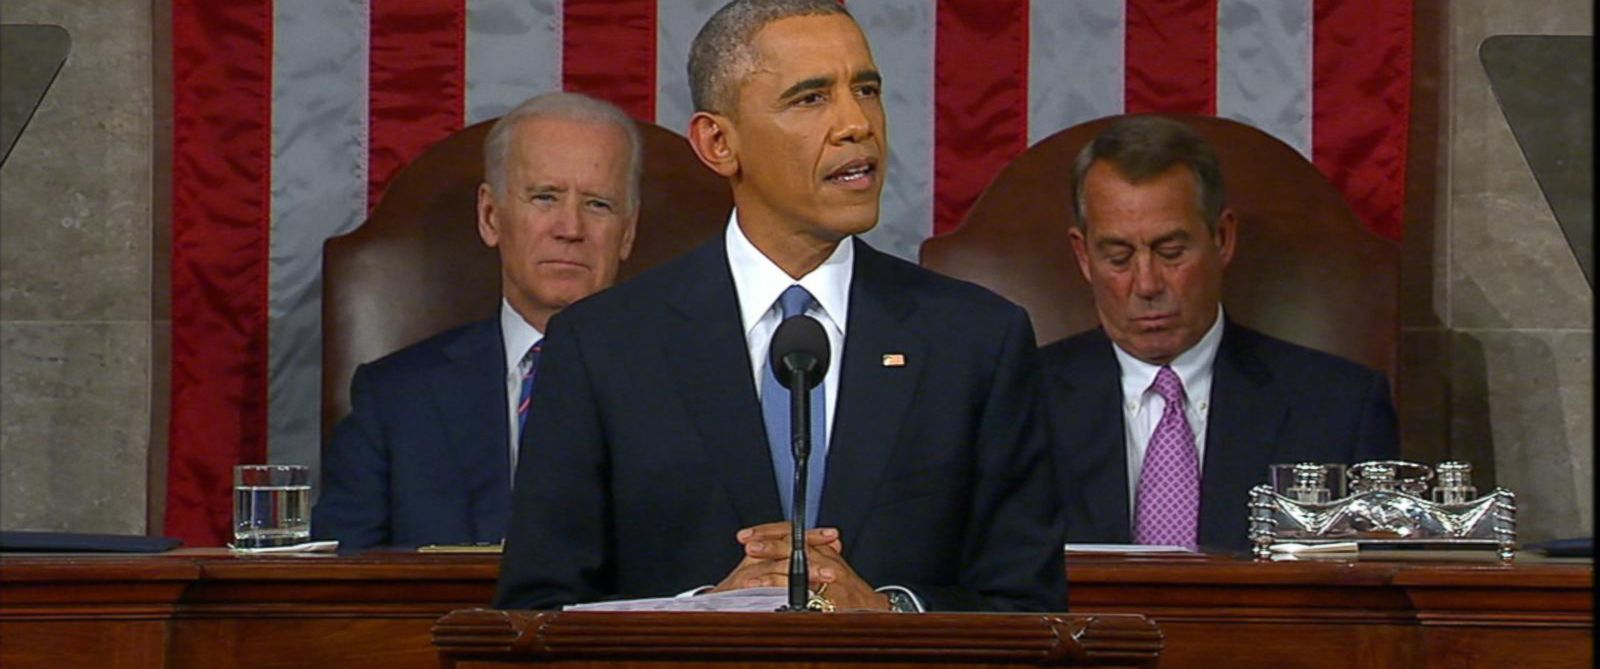 PHOTO: President Obama addresses the House Chamber for the State of the Union, Jan. 20, 2015.